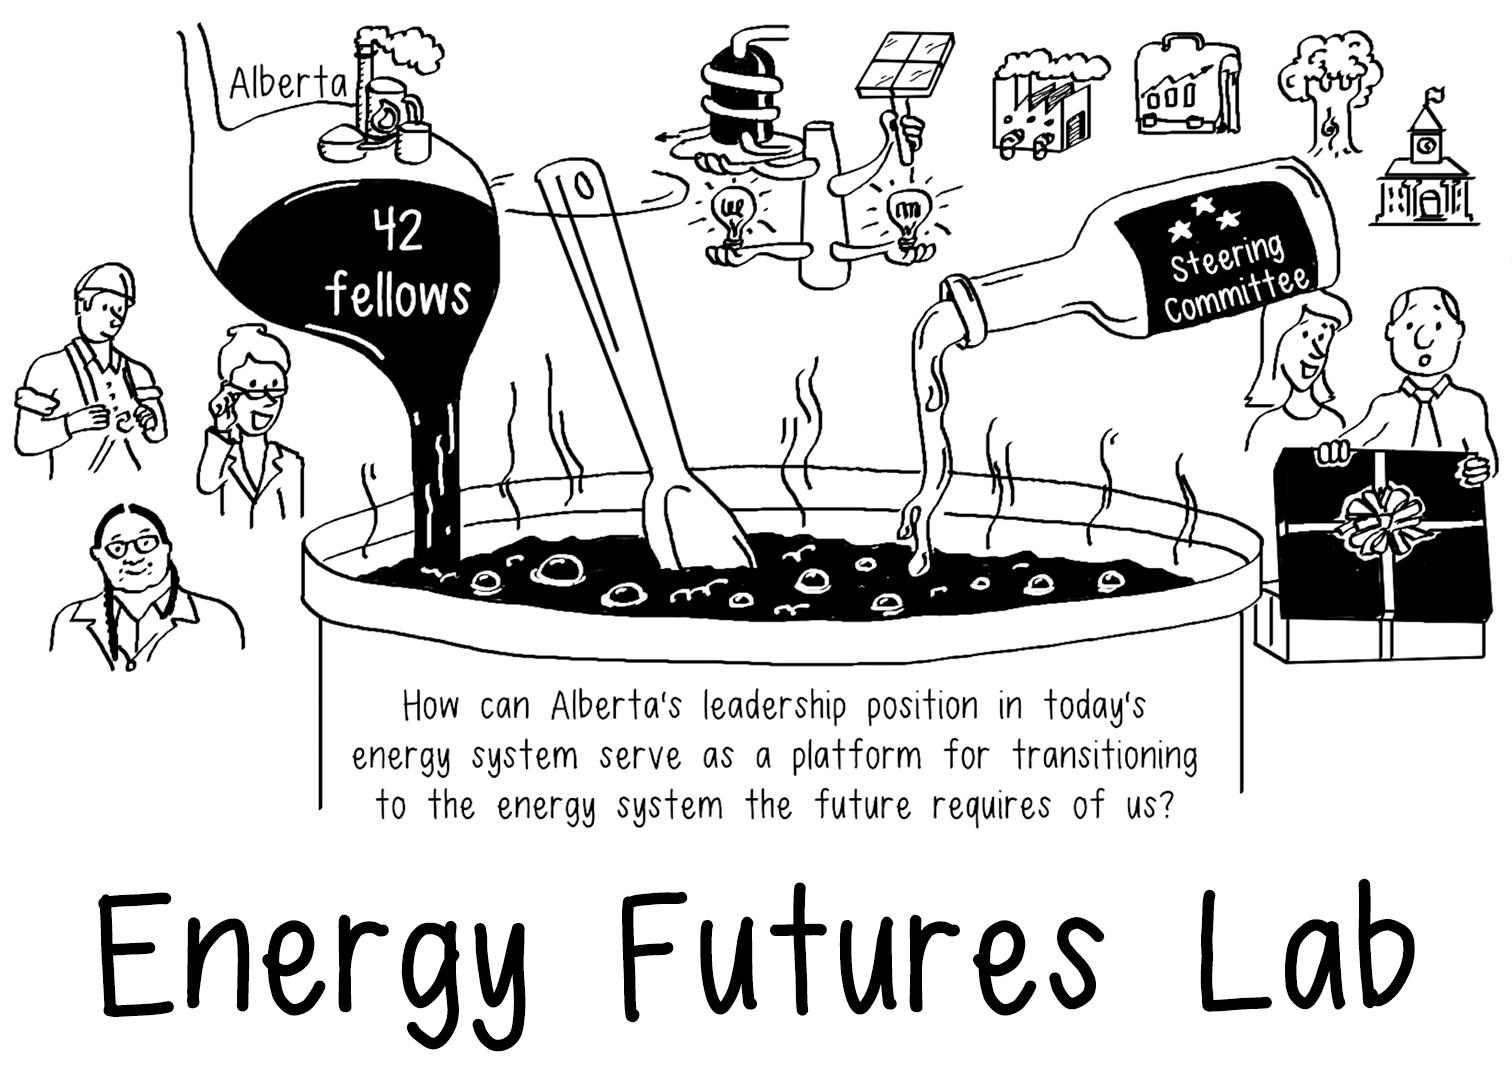 Energy Futures Lab (Alberta, Canada)